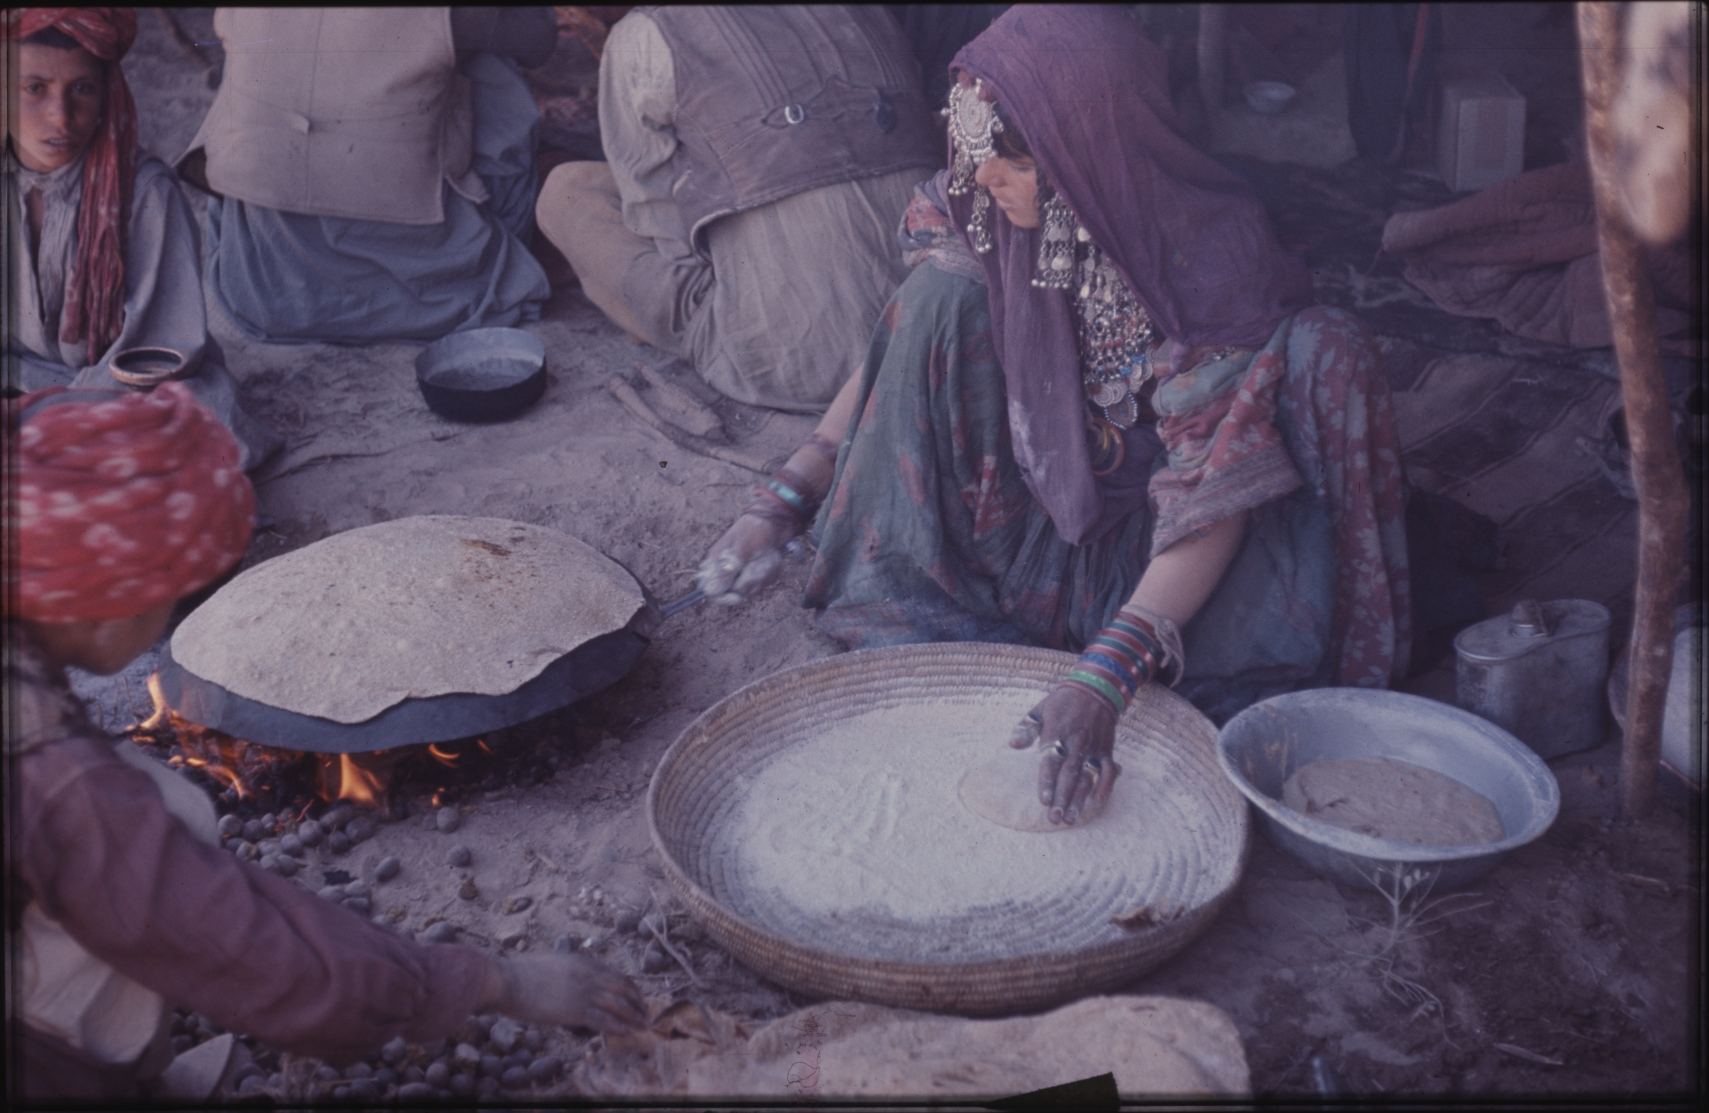 The main constituent of the nomad diet is flat bread baked over an open fire. They rarely eat meat. Photo: Jean Bourgeois, 1971